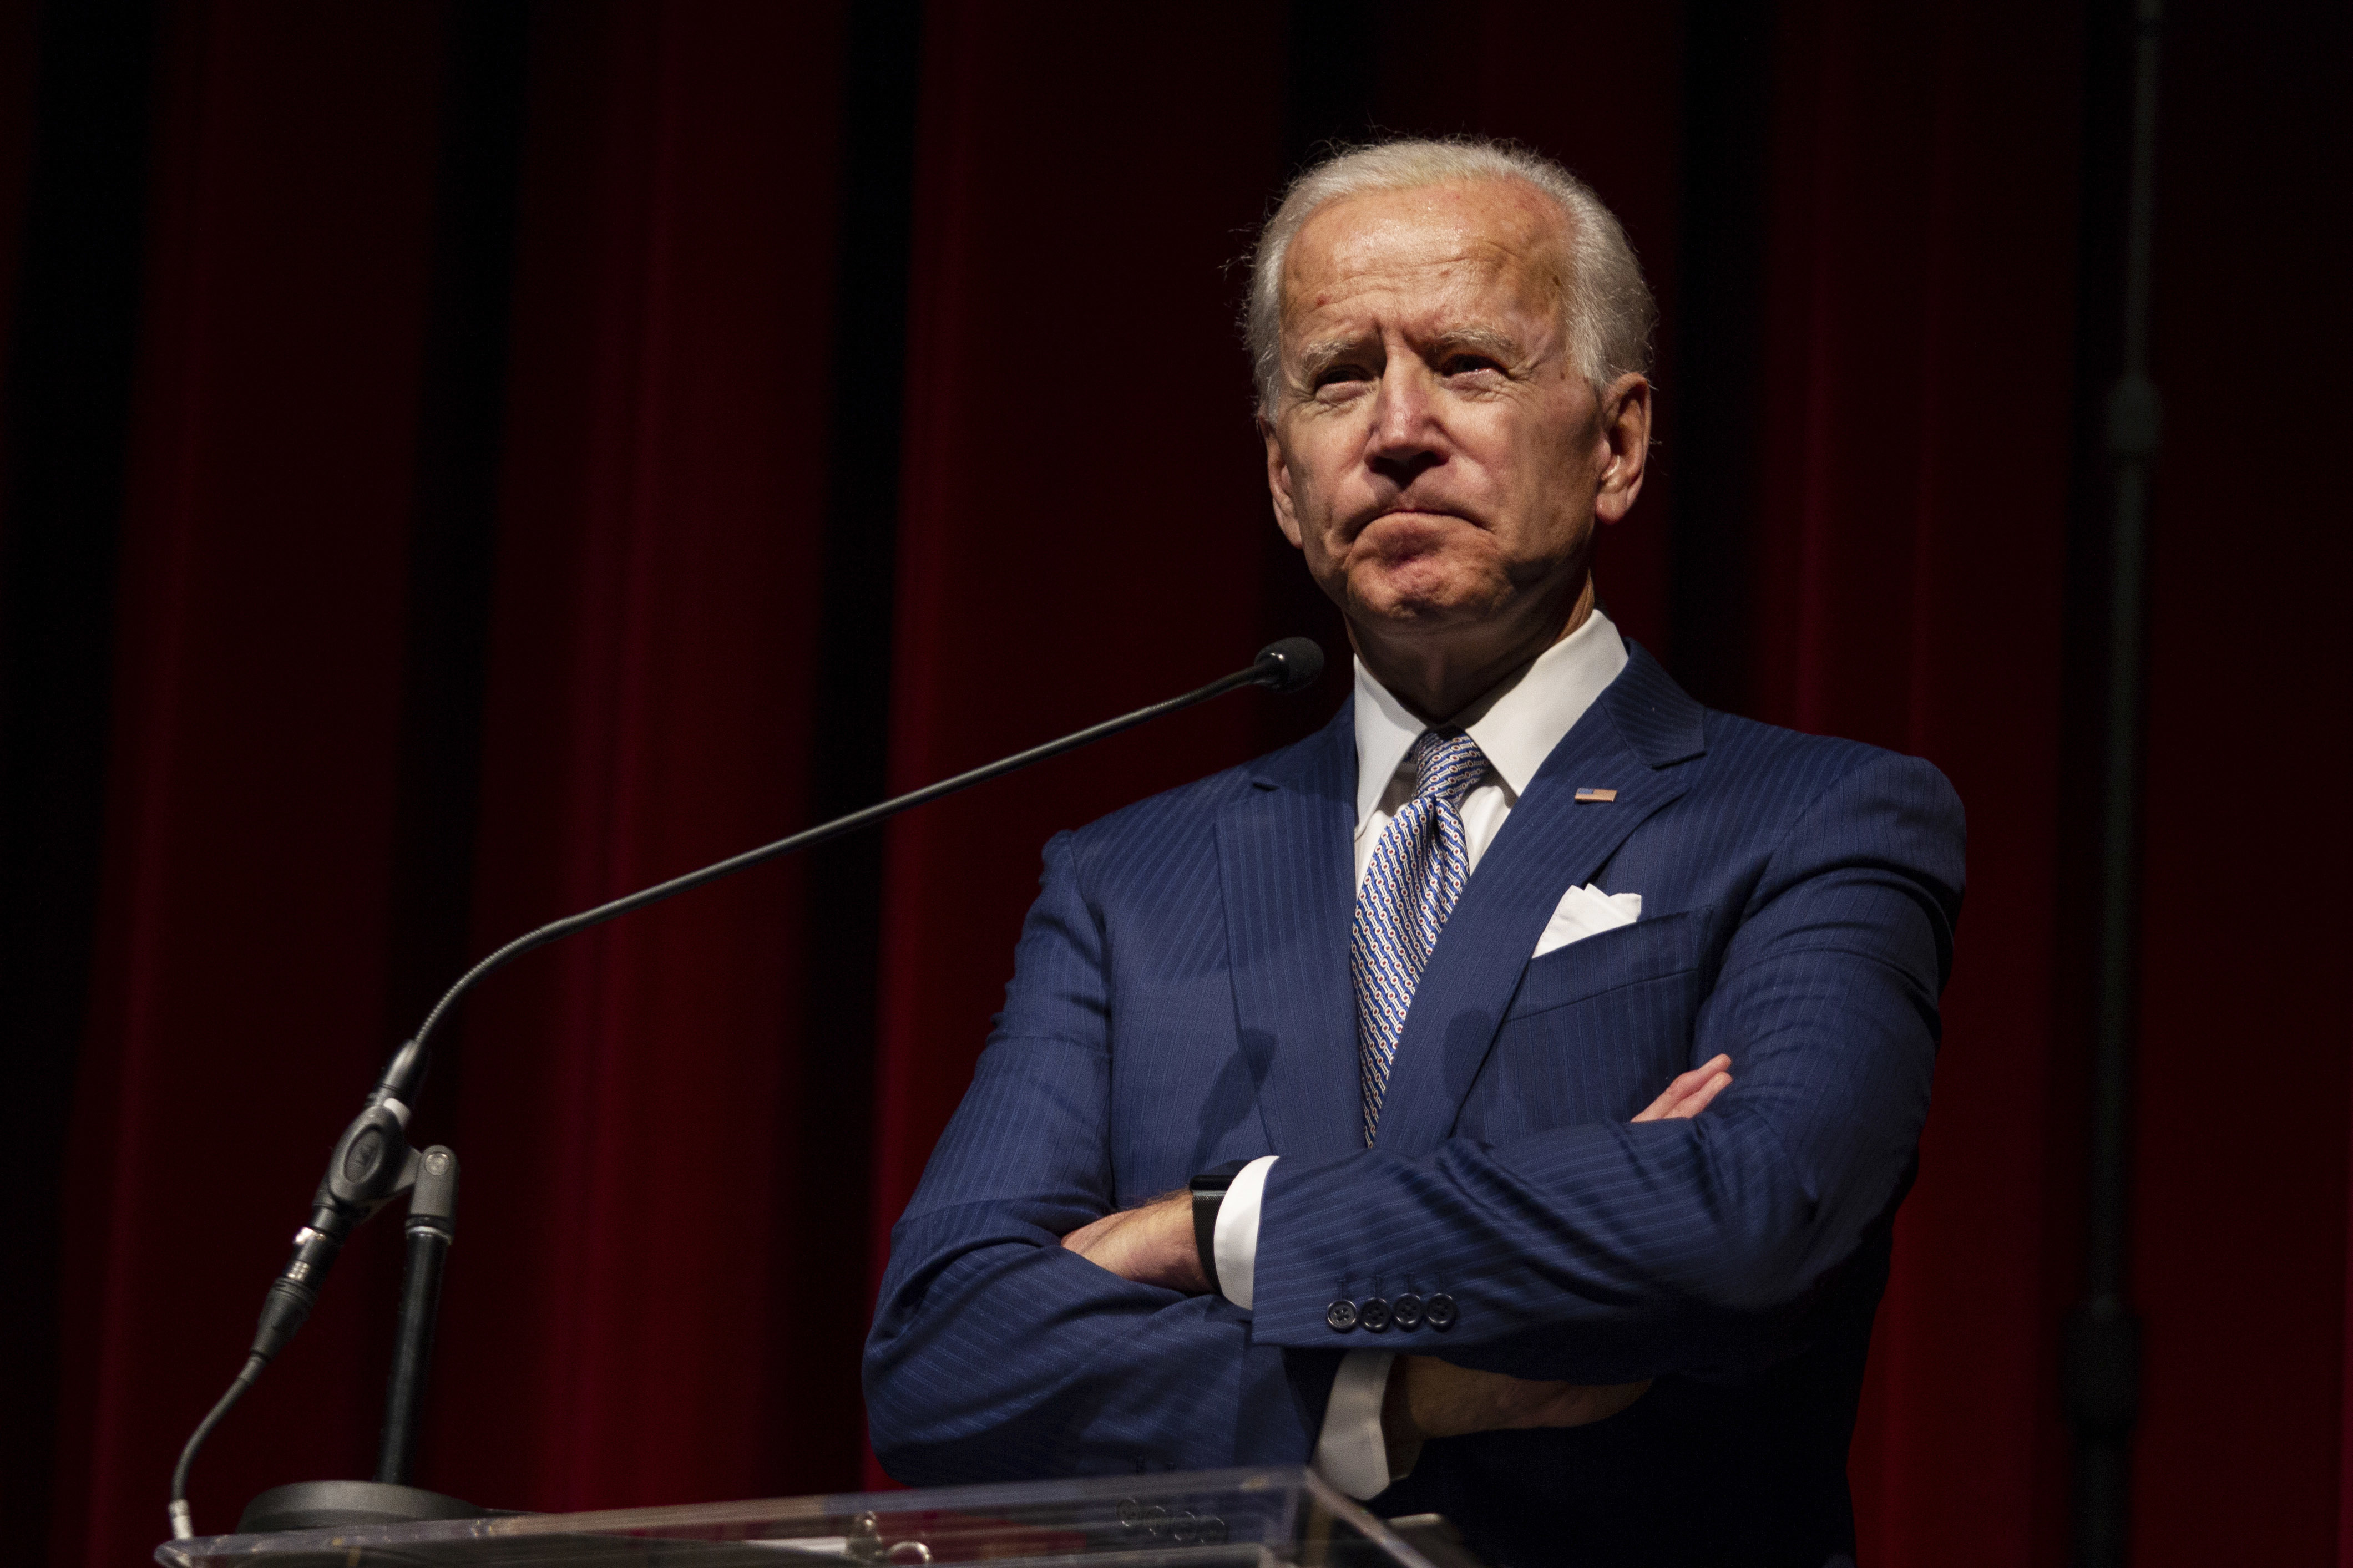 Joe Biden says he's the 'most qualified person in the country to be president'